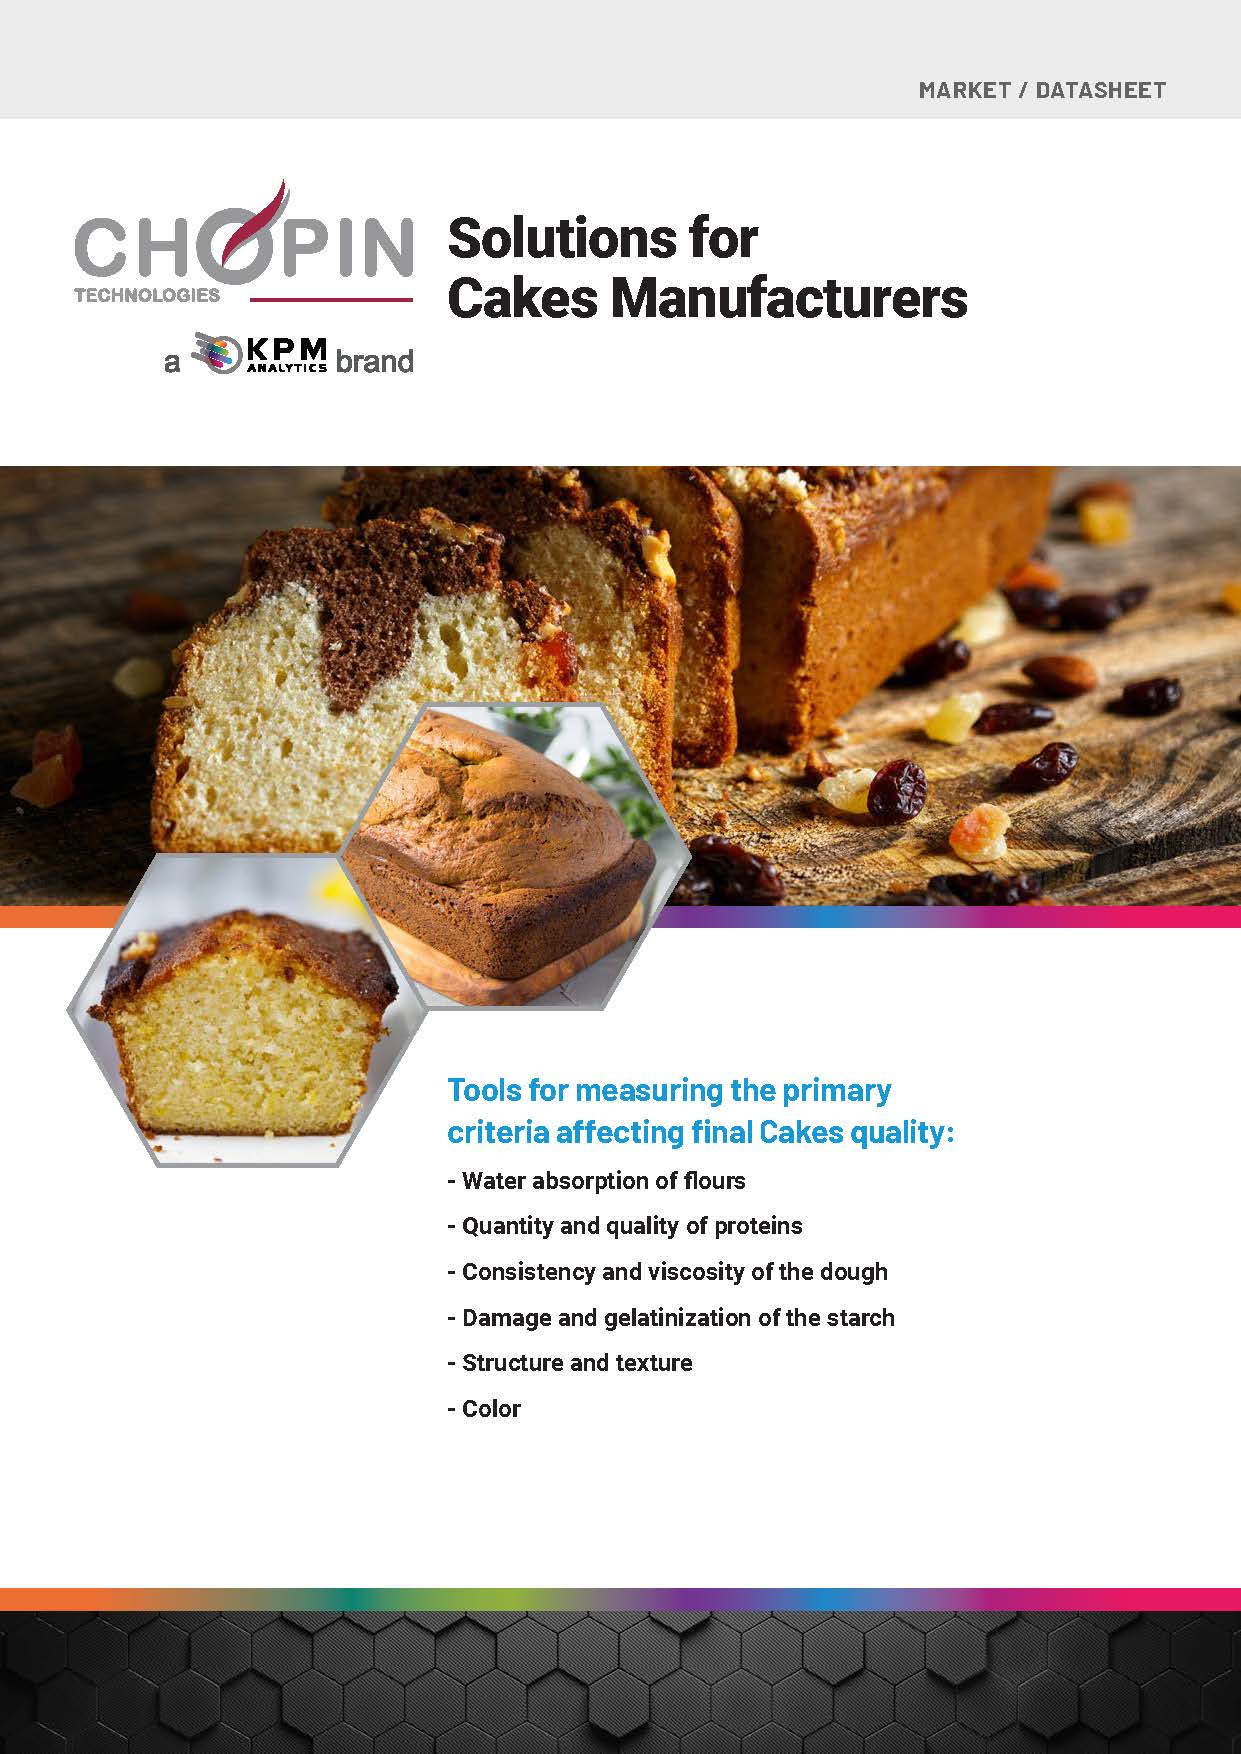 Solutions for Cakes Manufacturers